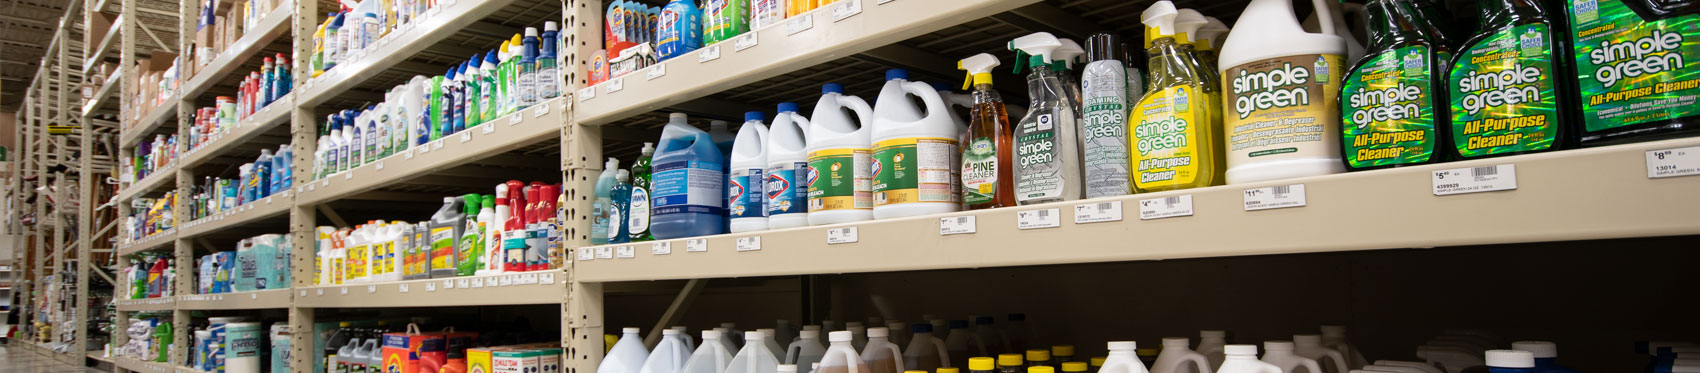 New Cleaning Supplies Racking - Shelving